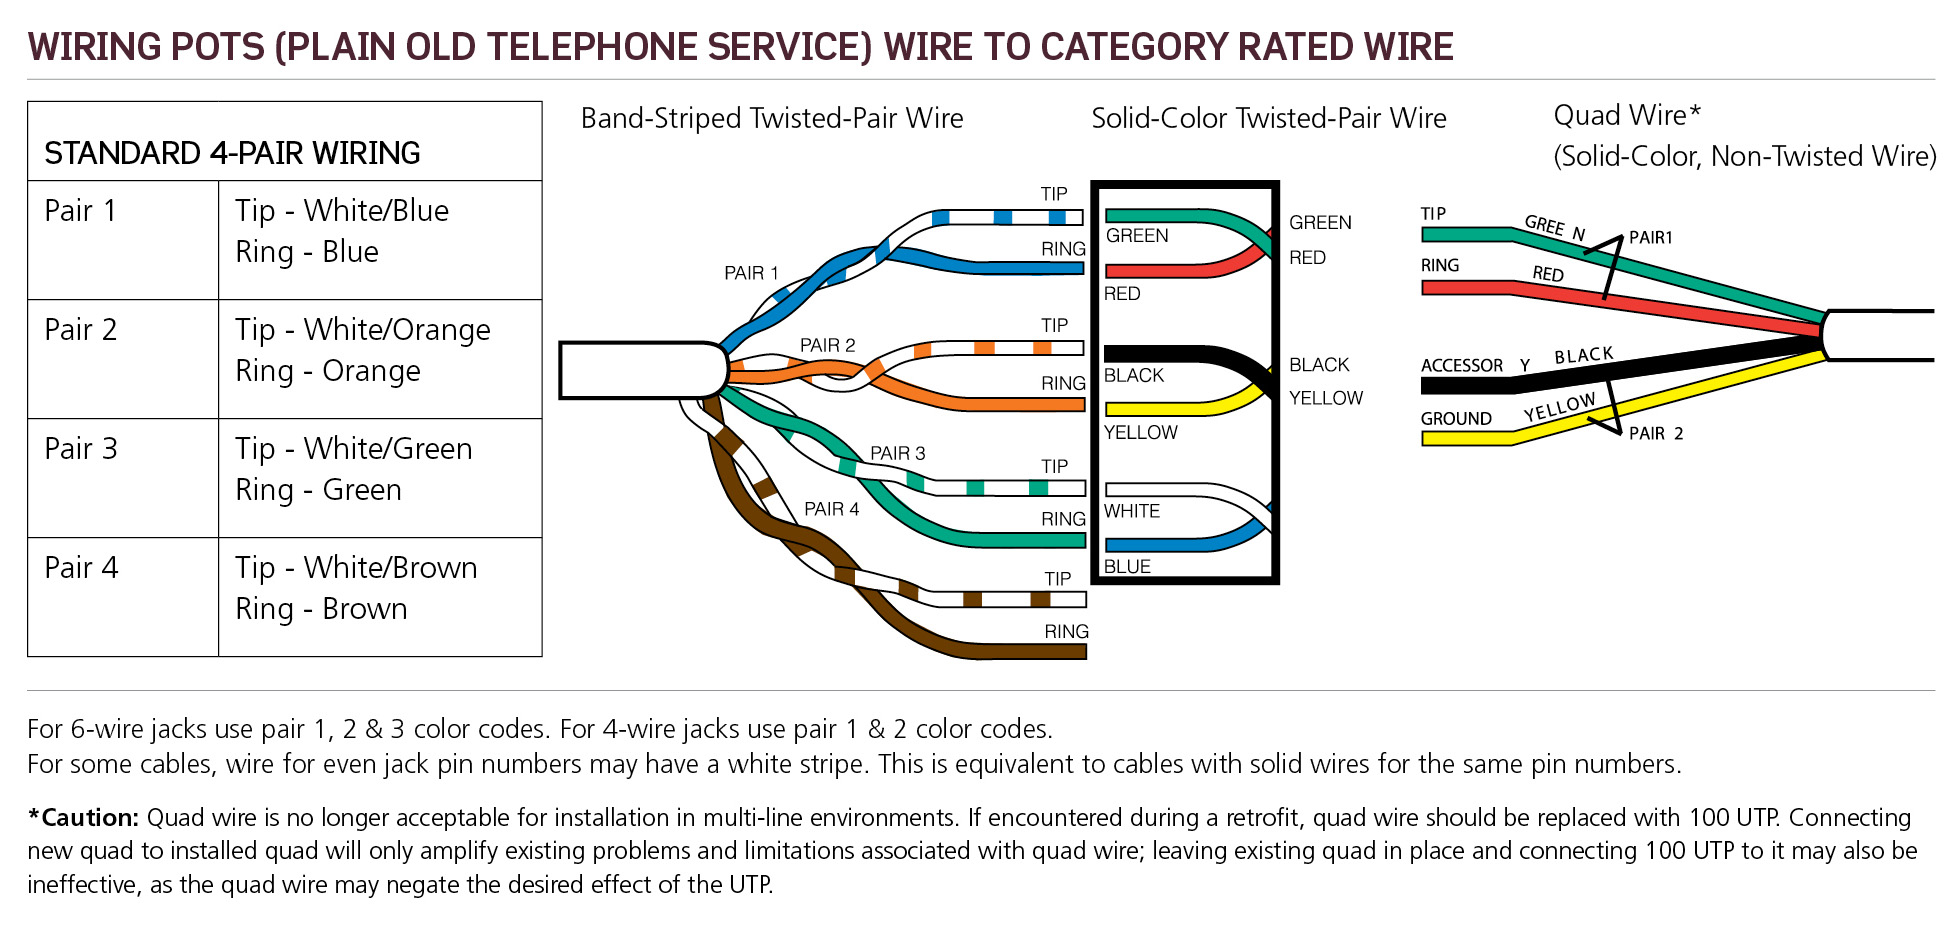 rj11 phone wiring diagram wiring diagram portal rj11 6 wire telephone rj11 wire diagram [ 1960 x 936 Pixel ]